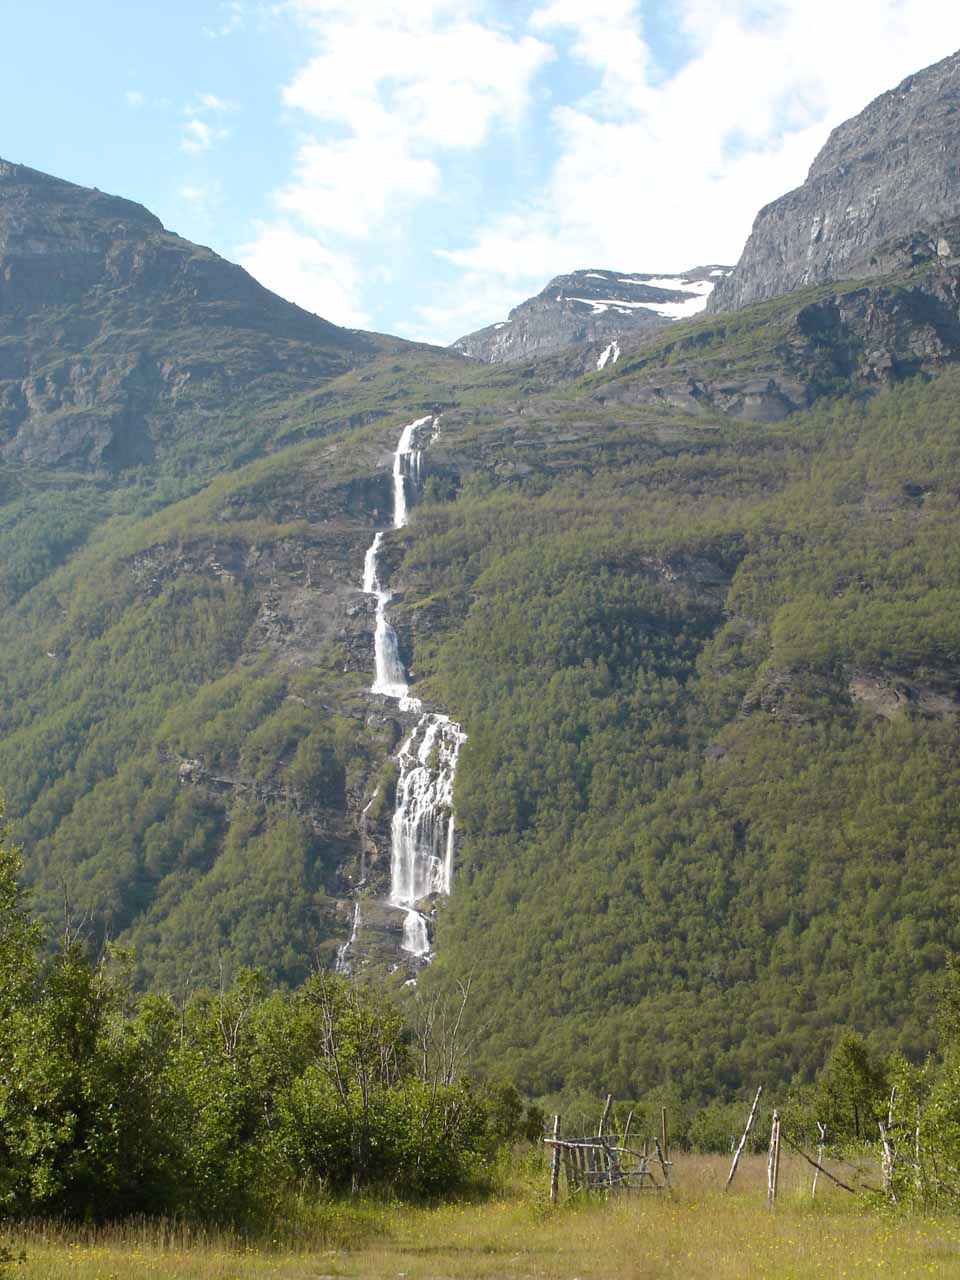 More direct look at what I'm calling 'Oksefossen'